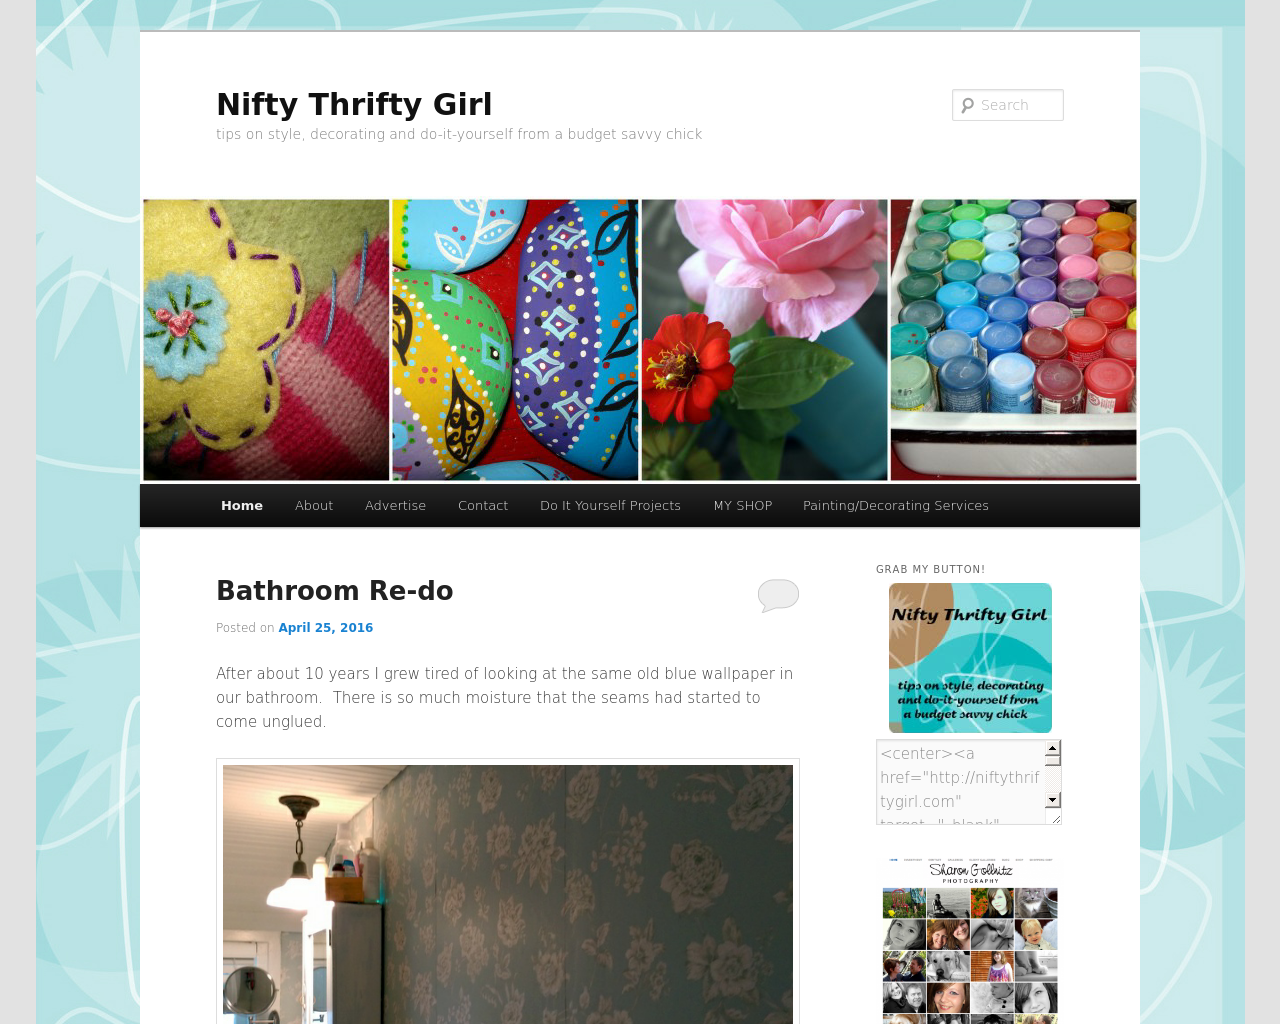 Nifty-Thrifty-Girl-Advertising-Reviews-Pricing